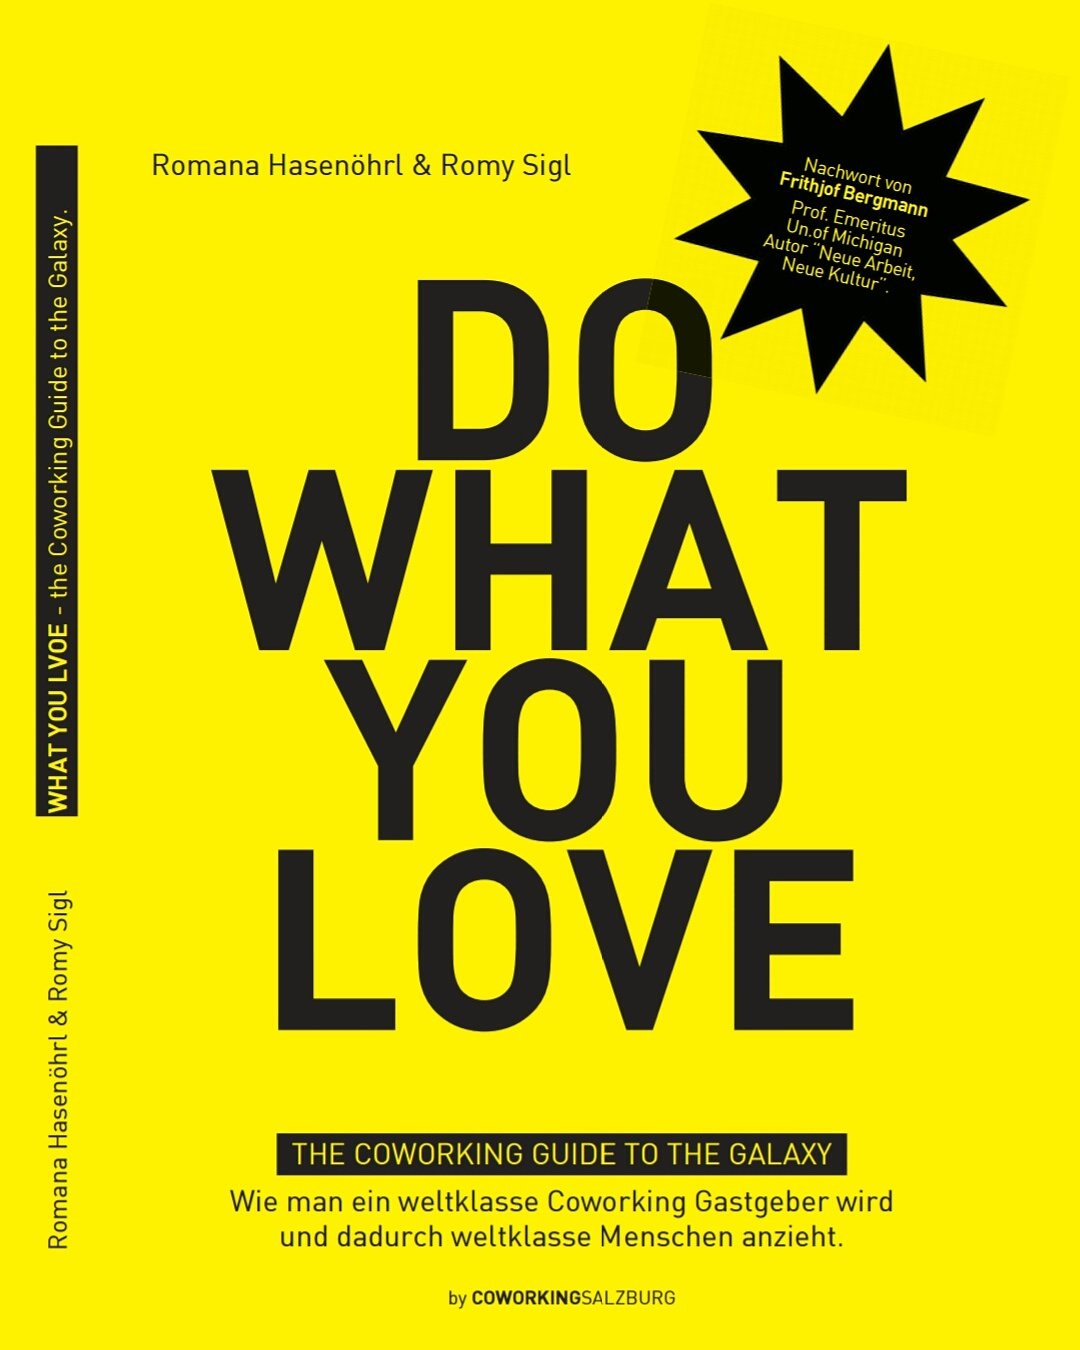 Do what you love - The Coworking guide to the galaxy: Wie man ein weltklasse Coworking Gastgeber wird und dadurch weltklasse Menschen anzieht